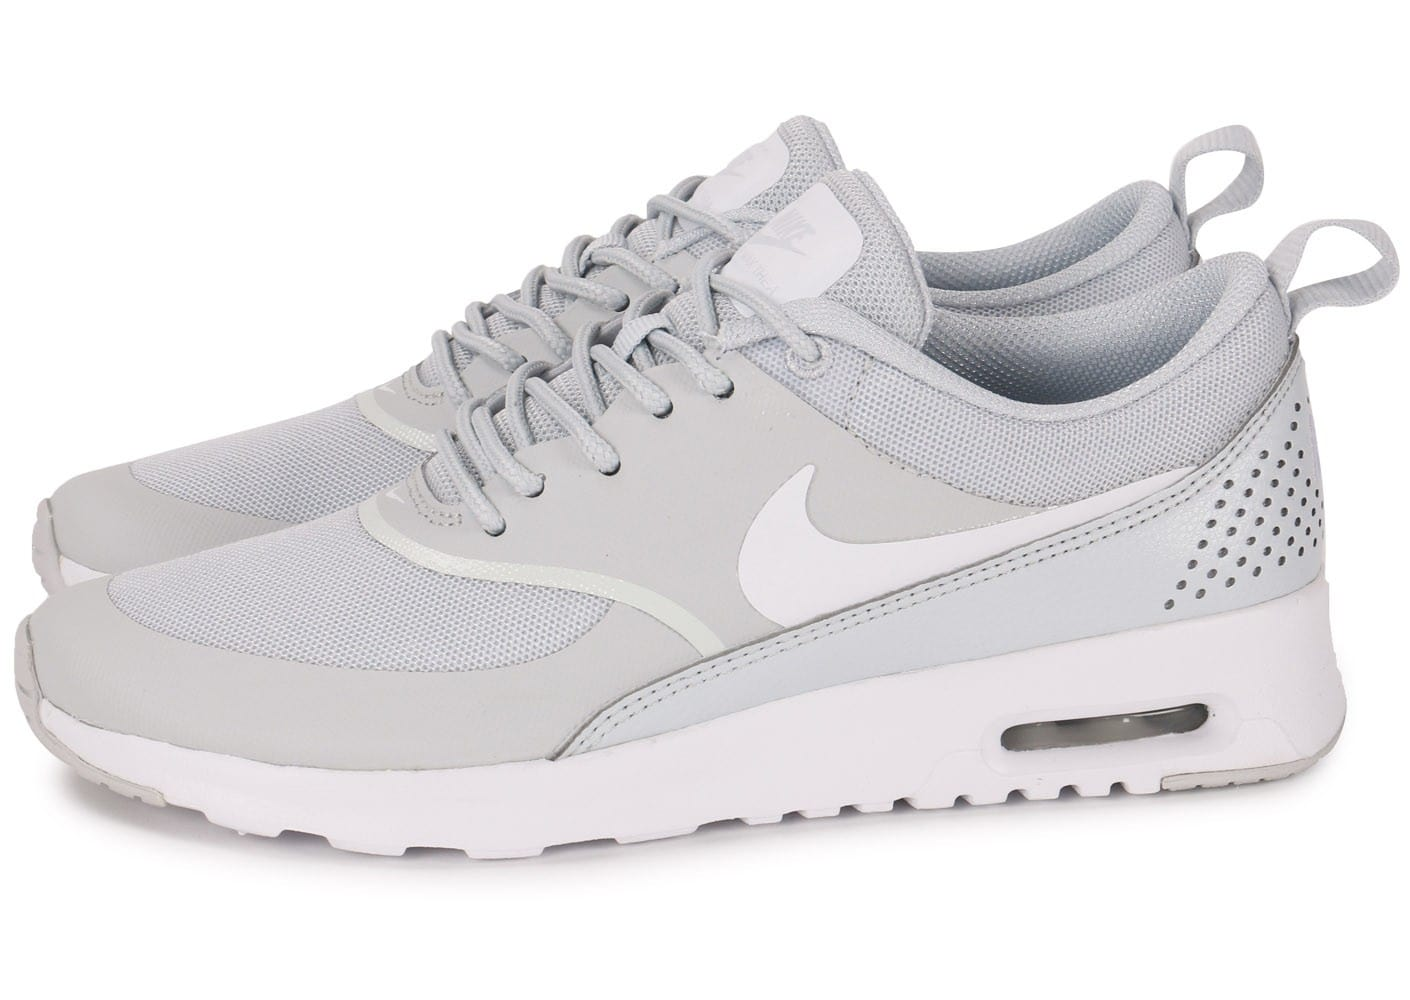 check out 58979 6ed66 air max thea femme gris